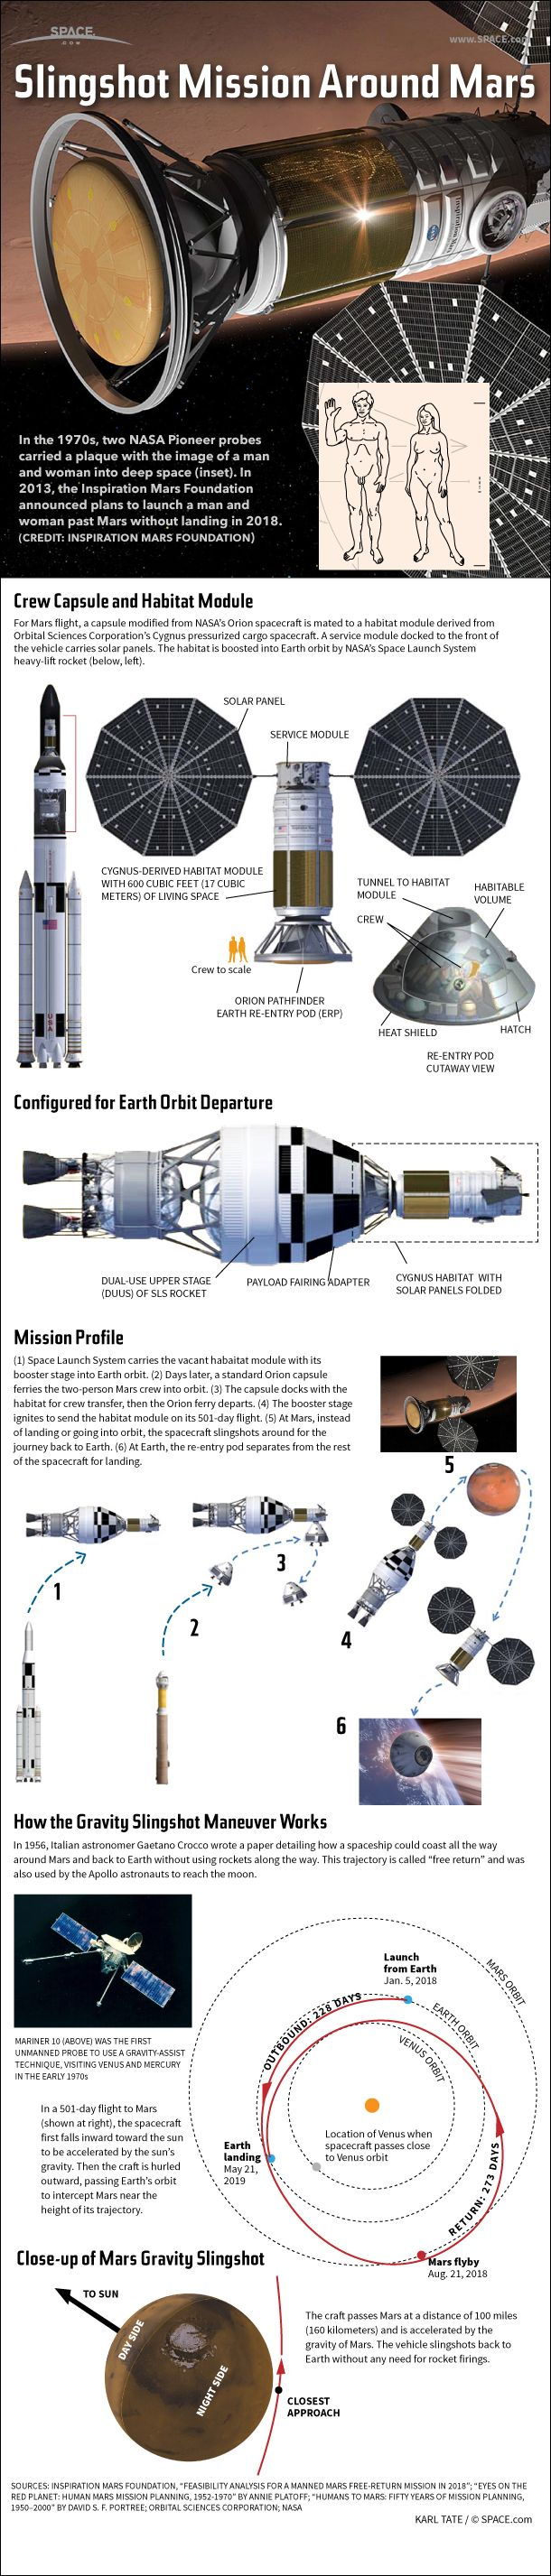 The Inspiration Mars mission is Space tourist Dennis Tito's daring proposal to send a man and a woman on a 501-day space flight around the planet Mars and back. See the full infographic and get an embed code.